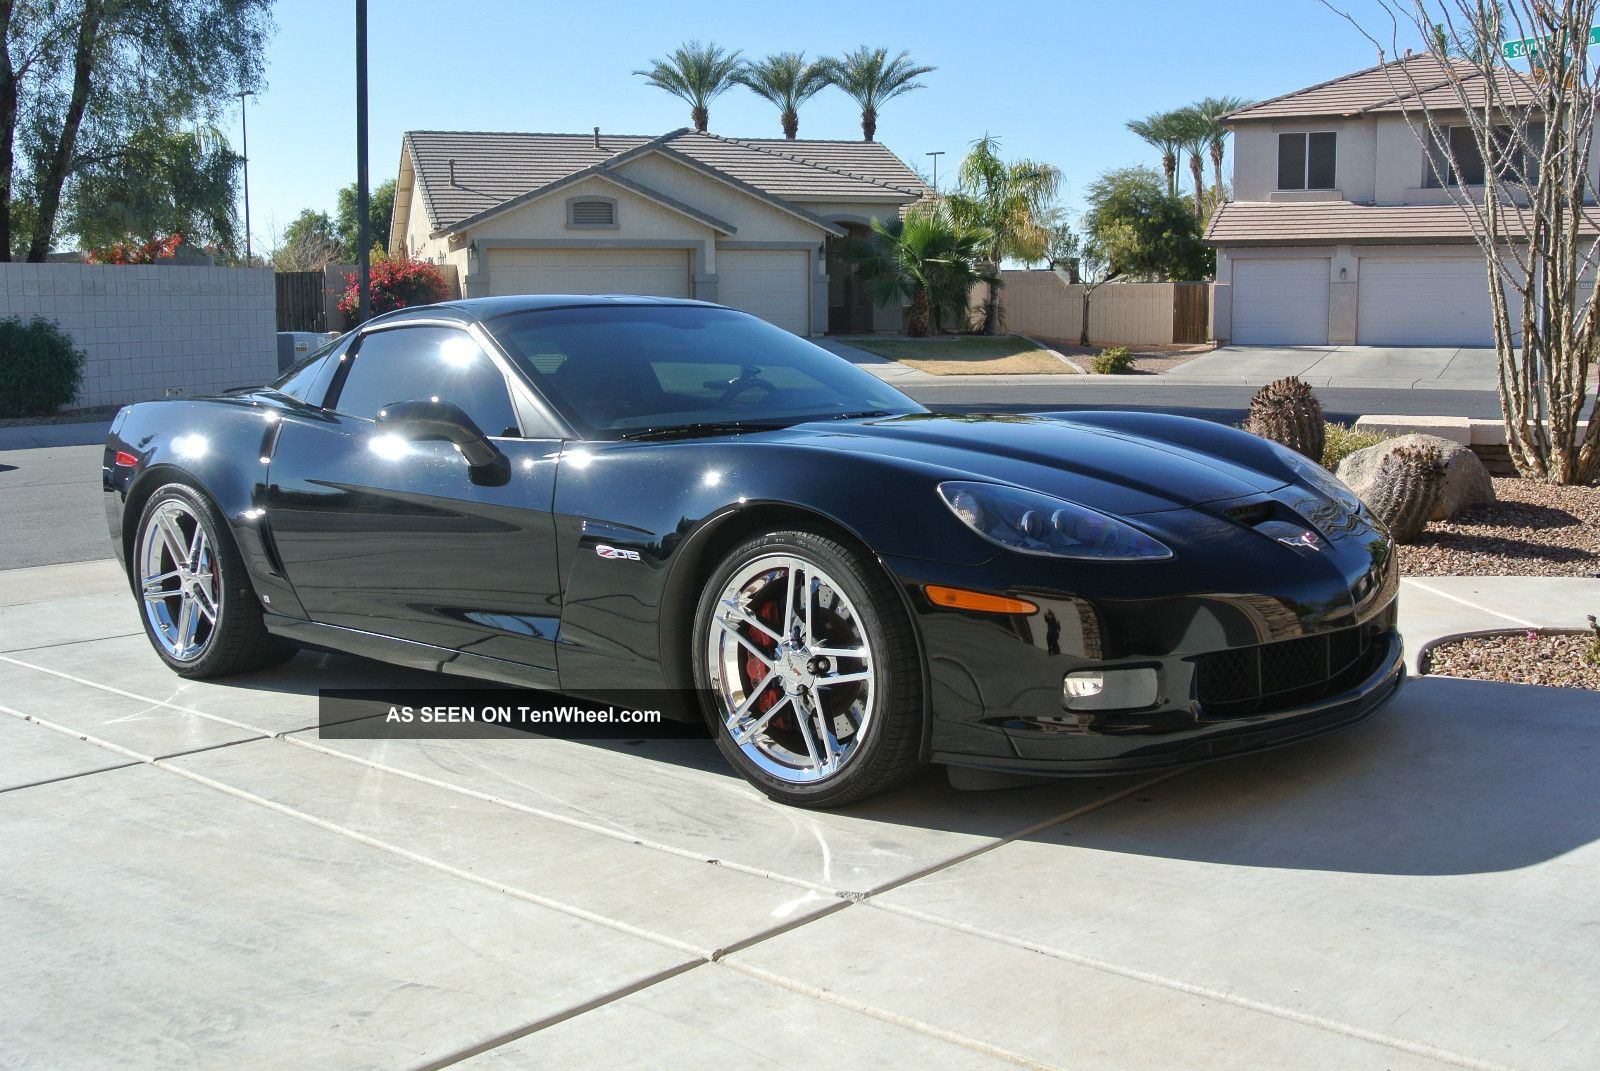 2008 chevrolet corvette z06 coupe 2 door 7 0l ls7 505hp. Black Bedroom Furniture Sets. Home Design Ideas